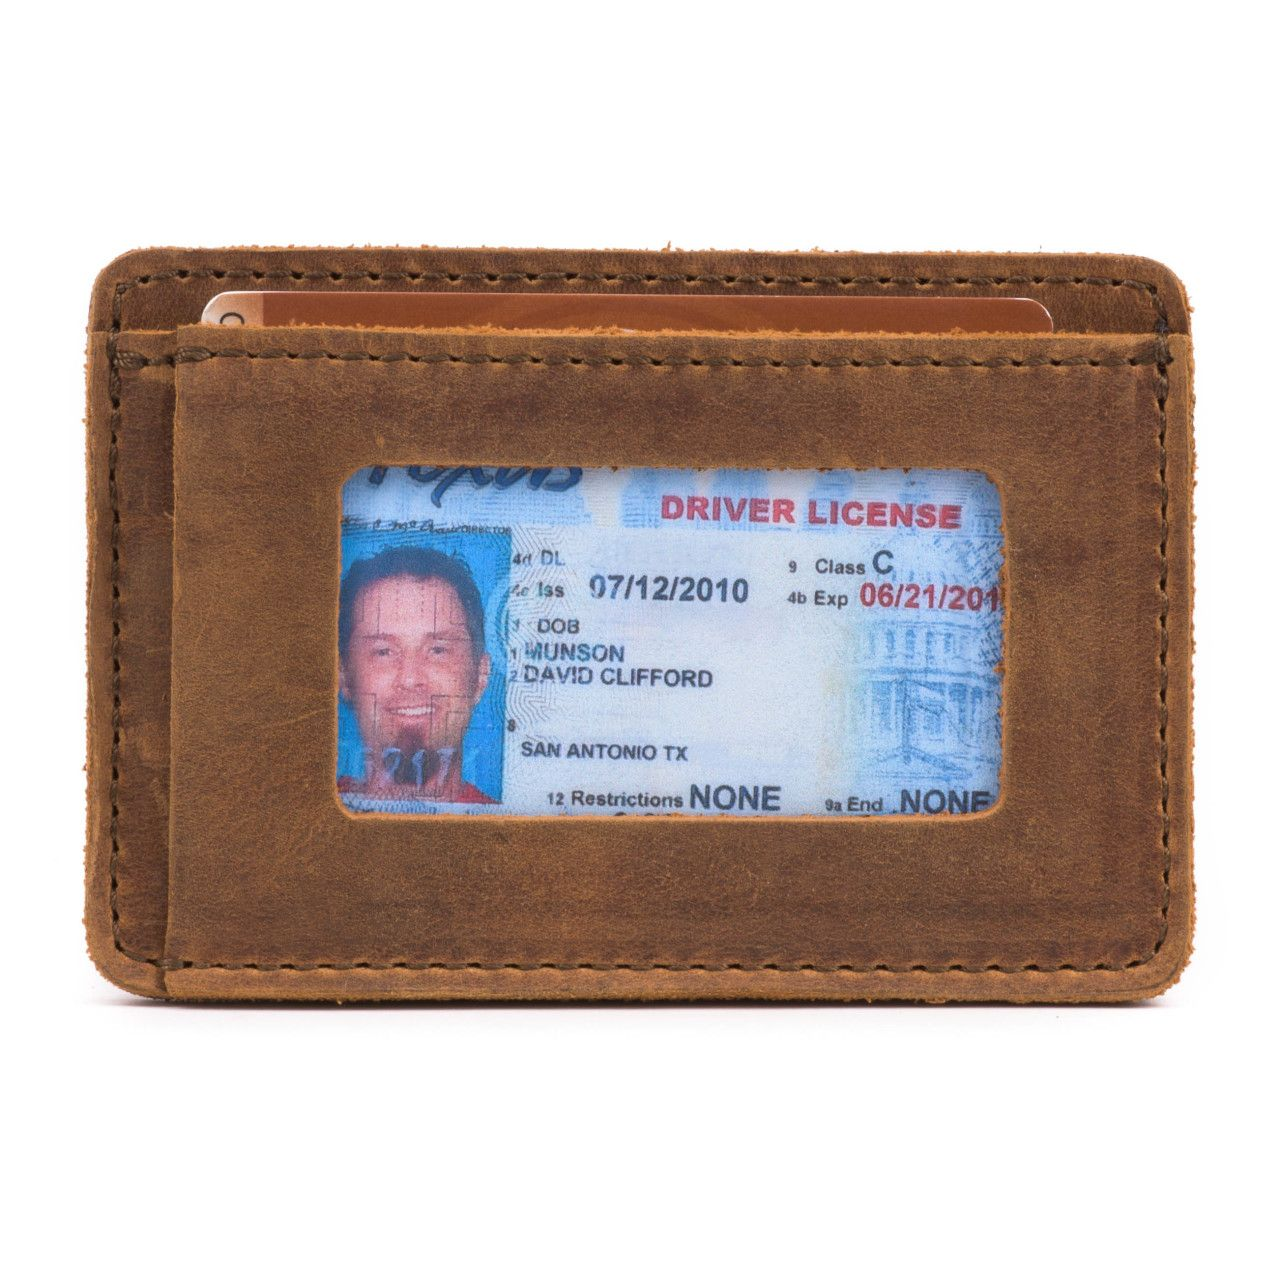 leather front pocket wallet in tobacco leather with a visible driving license